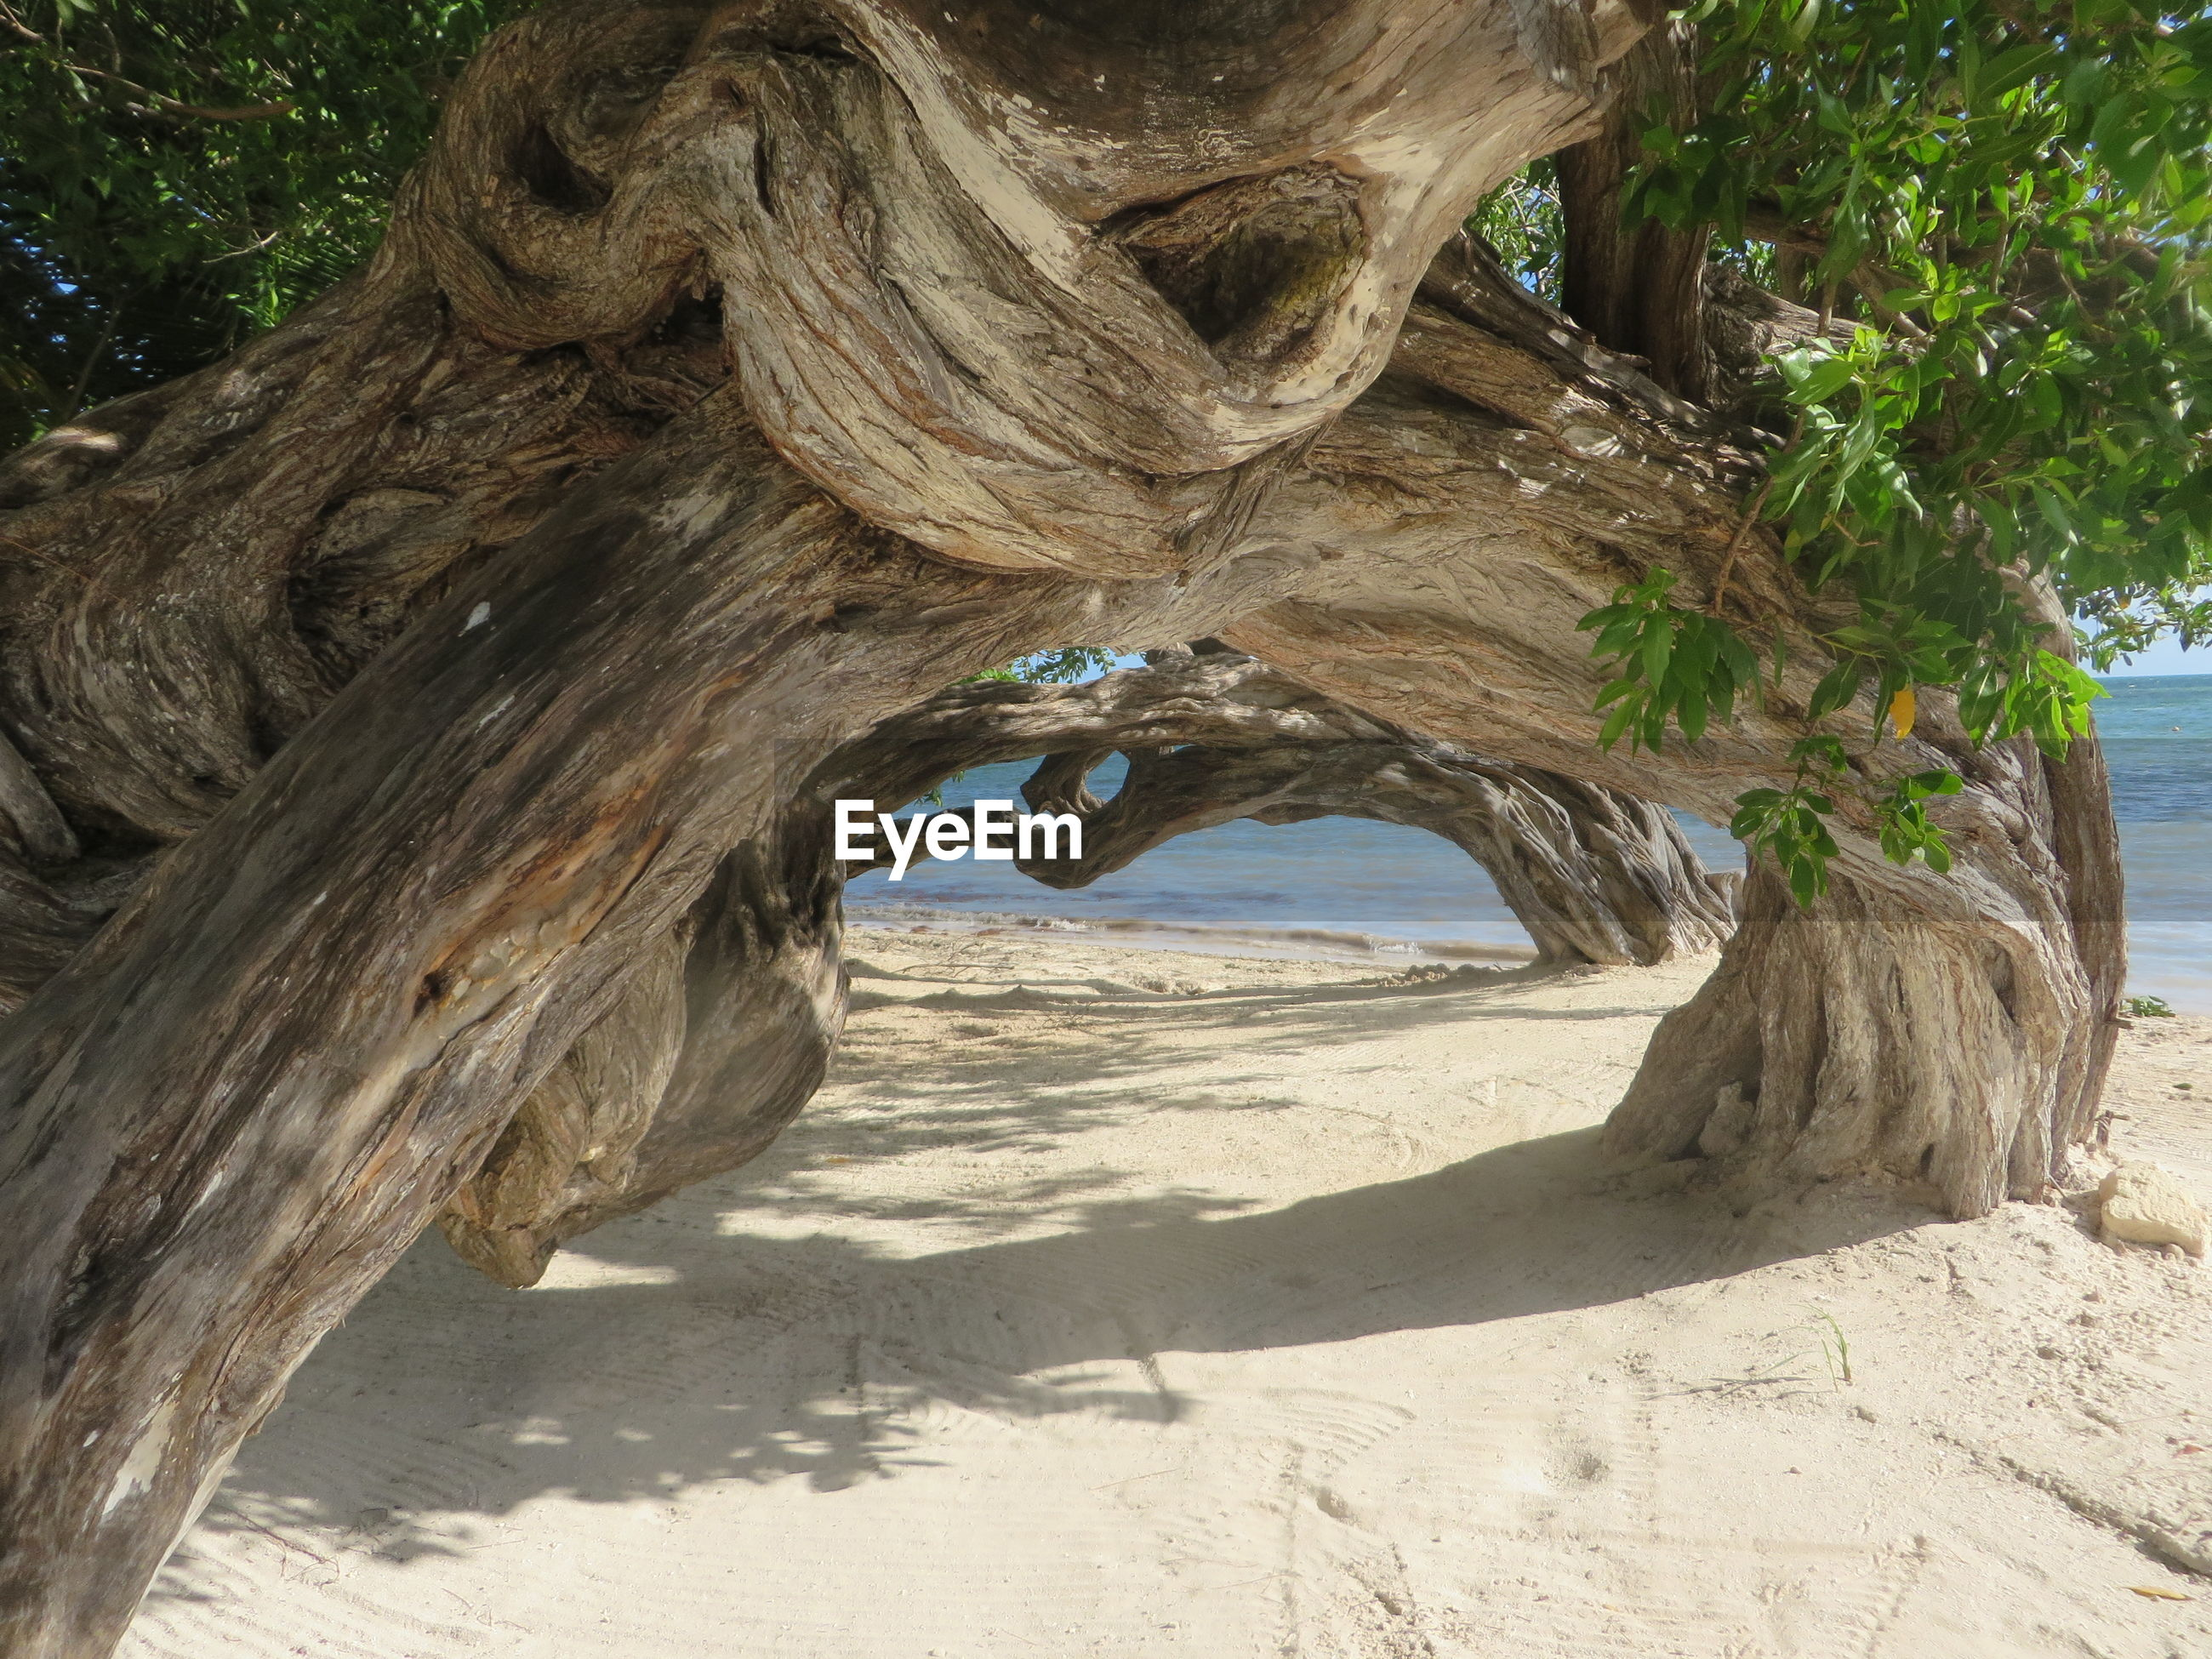 Trees on sandy beach during sunny day